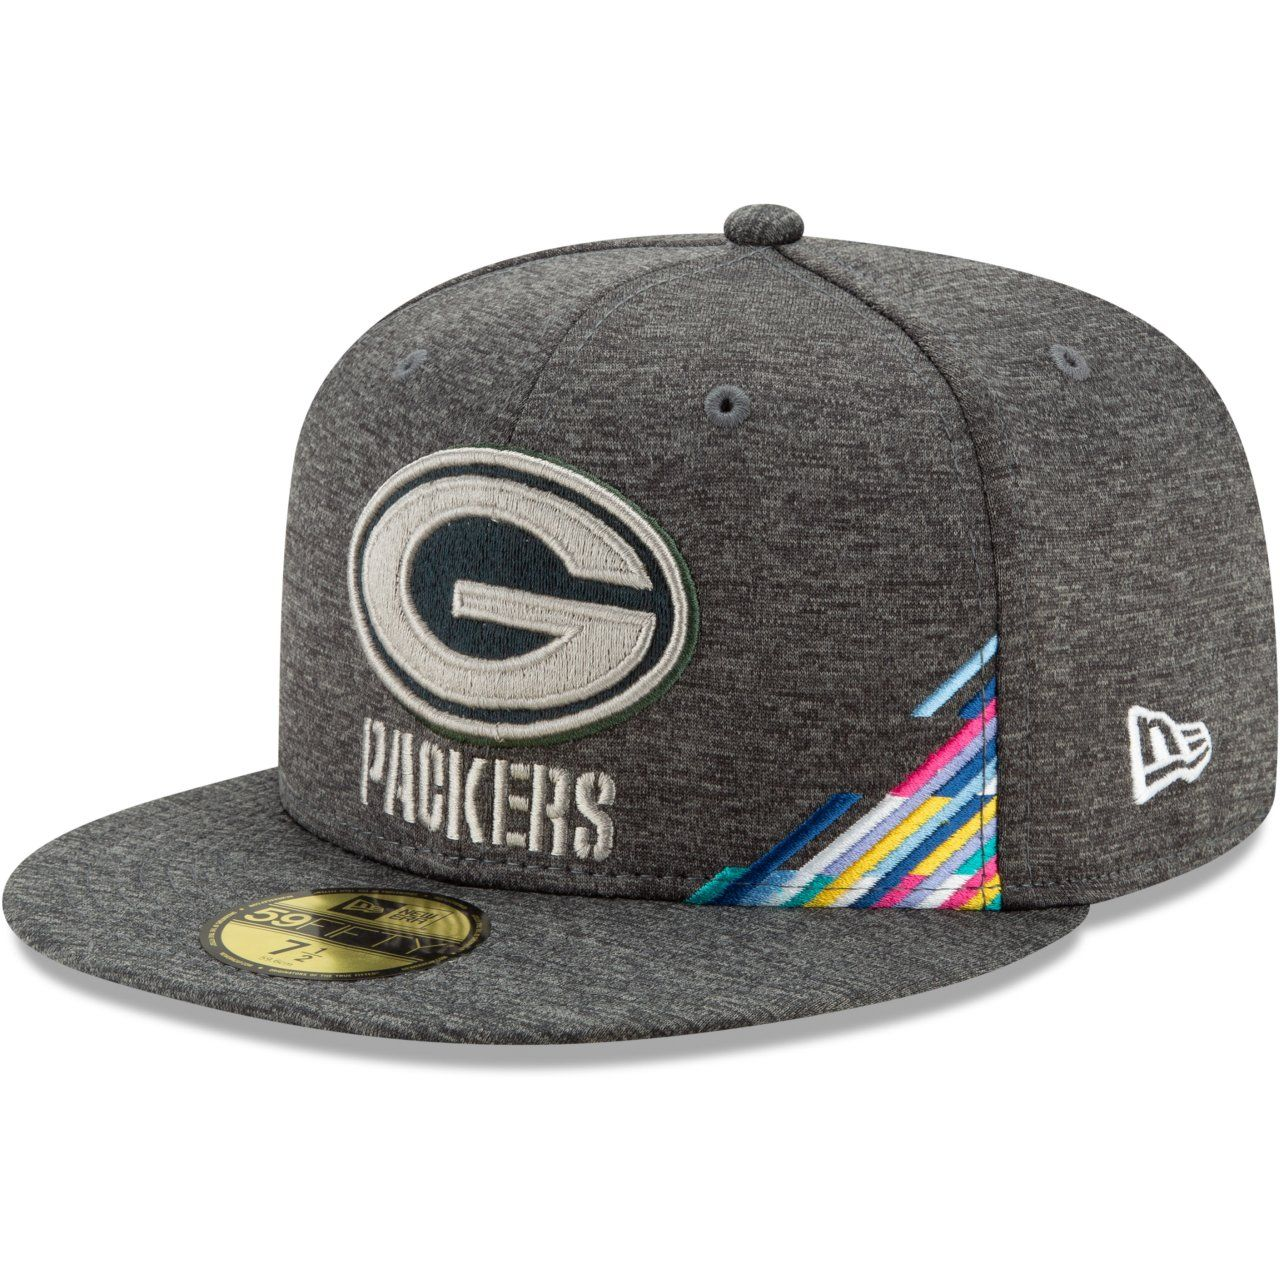 New Era 59Fifty Fitted Cap - CRUCIAL CATCH Green Bay Packers von New Era